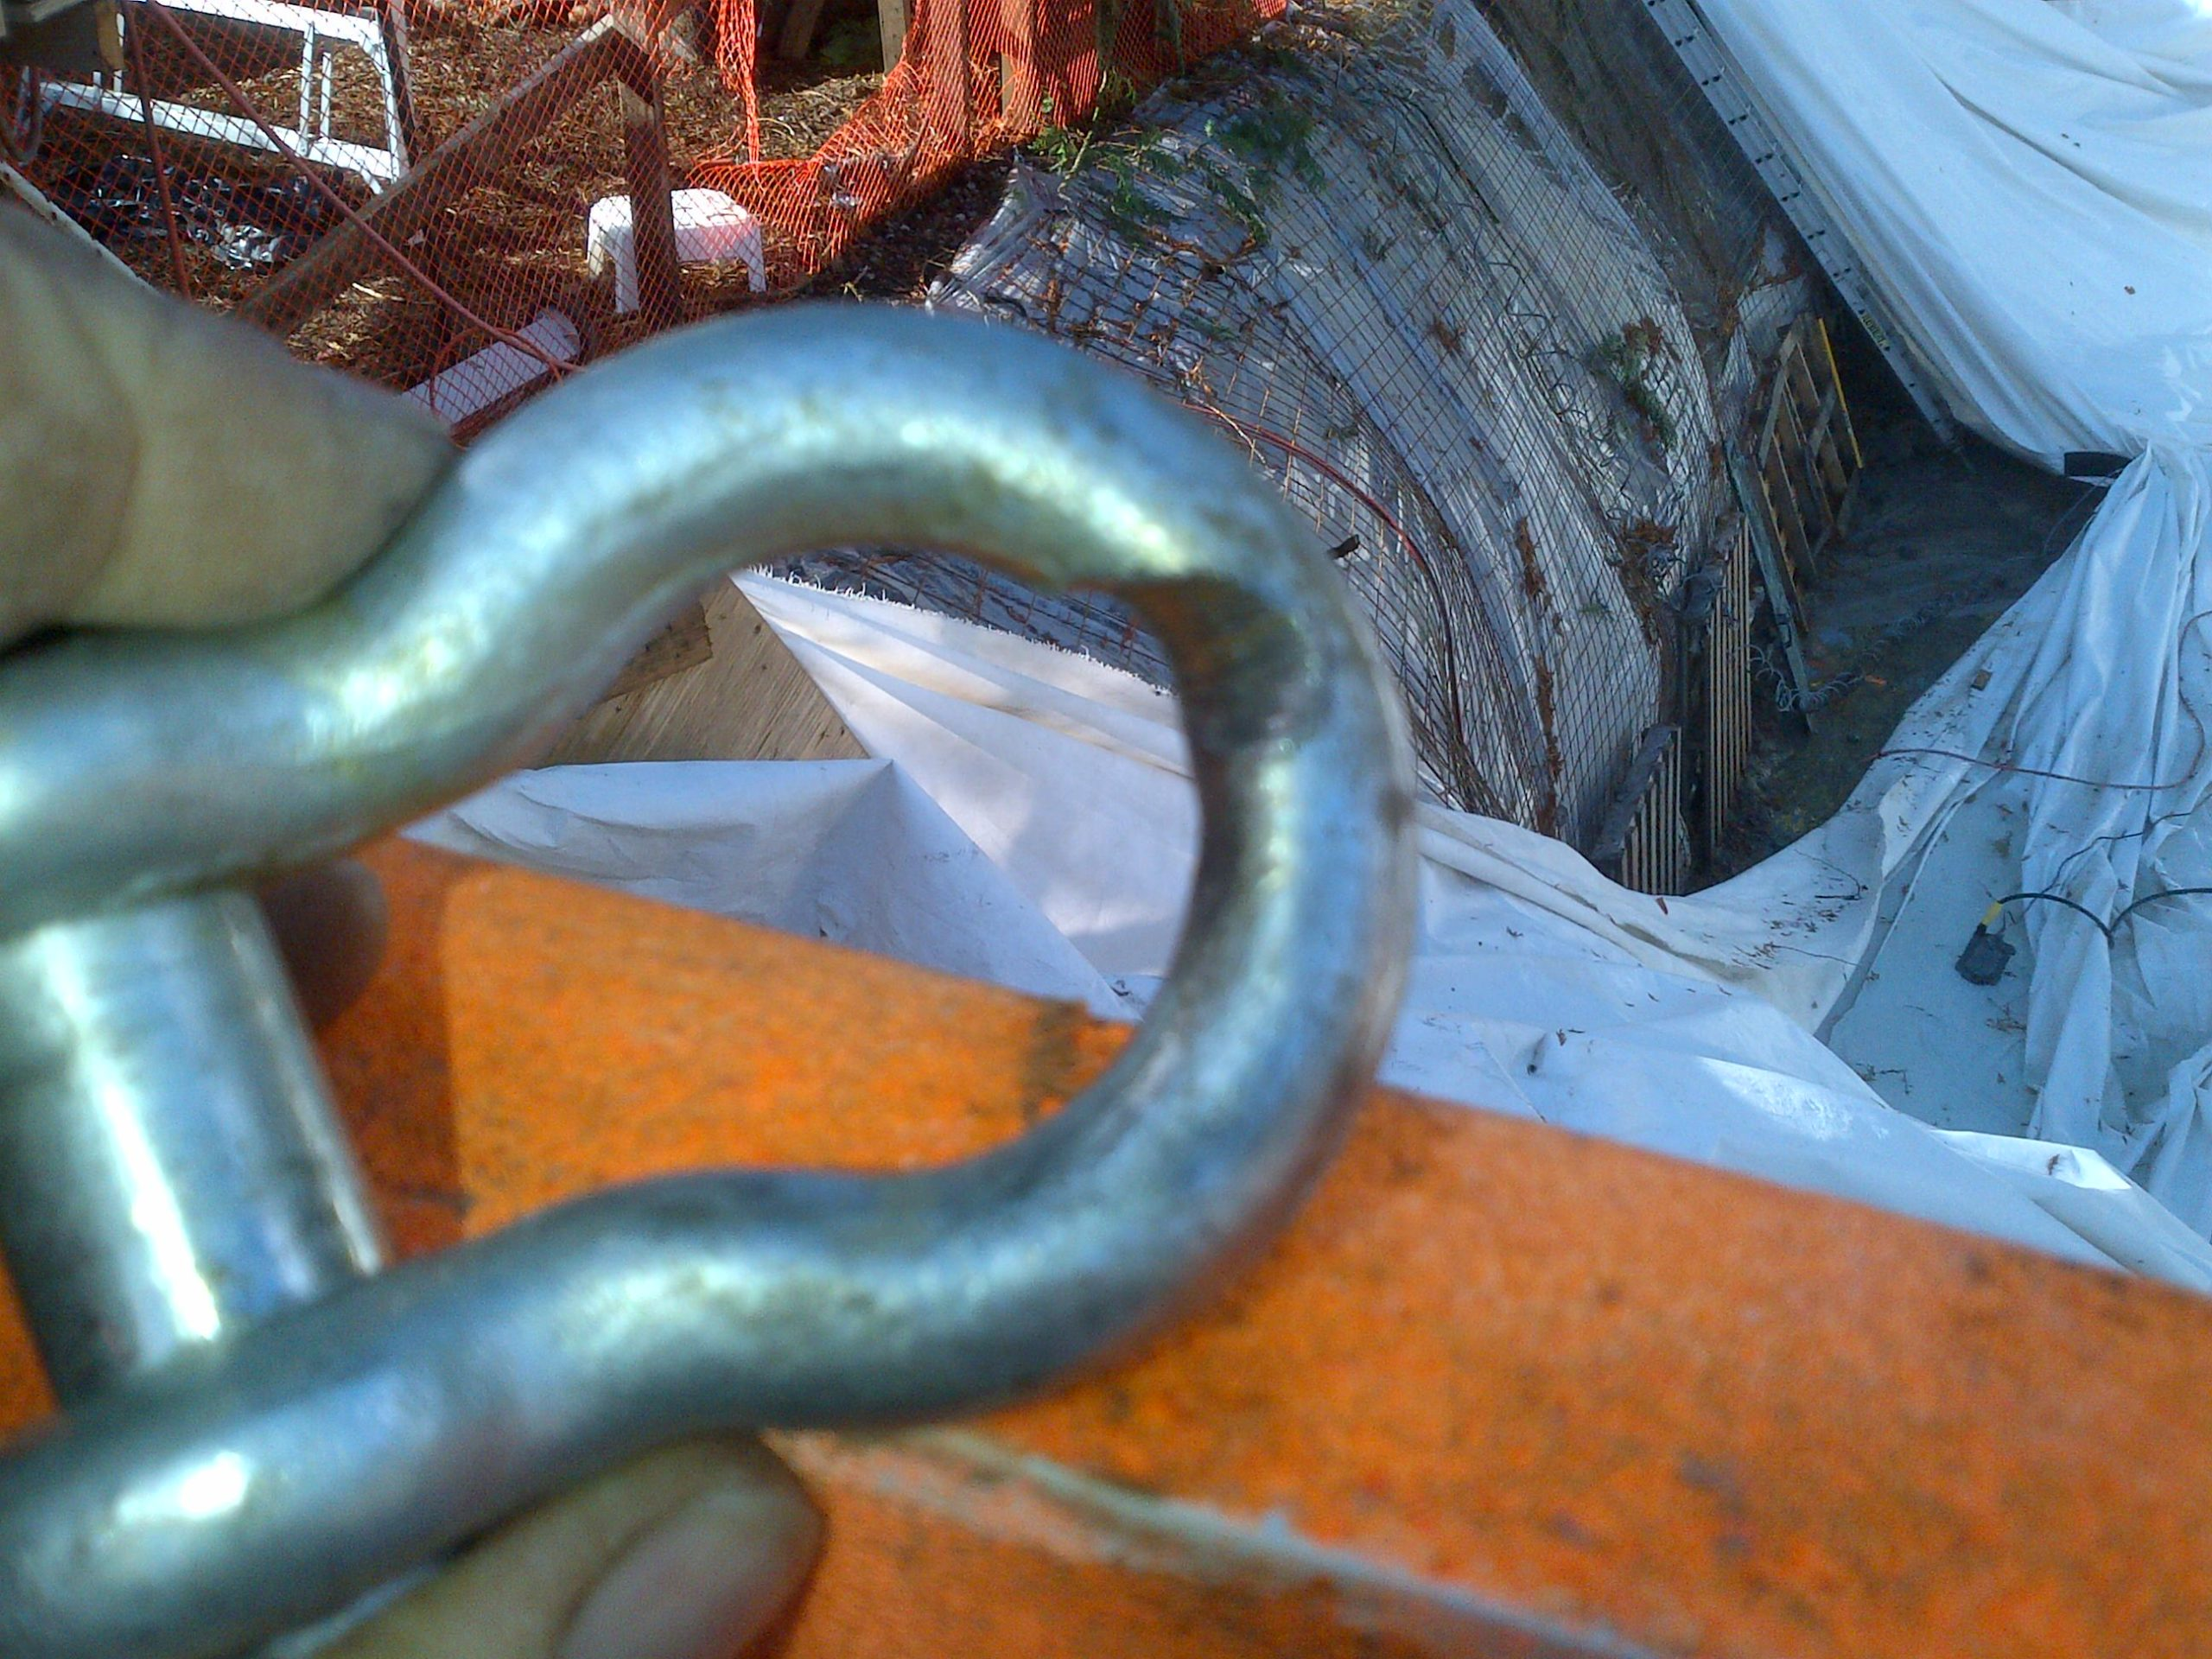 Shackle was cut about 25% of the way through.  Was only a matter of time before it failed.